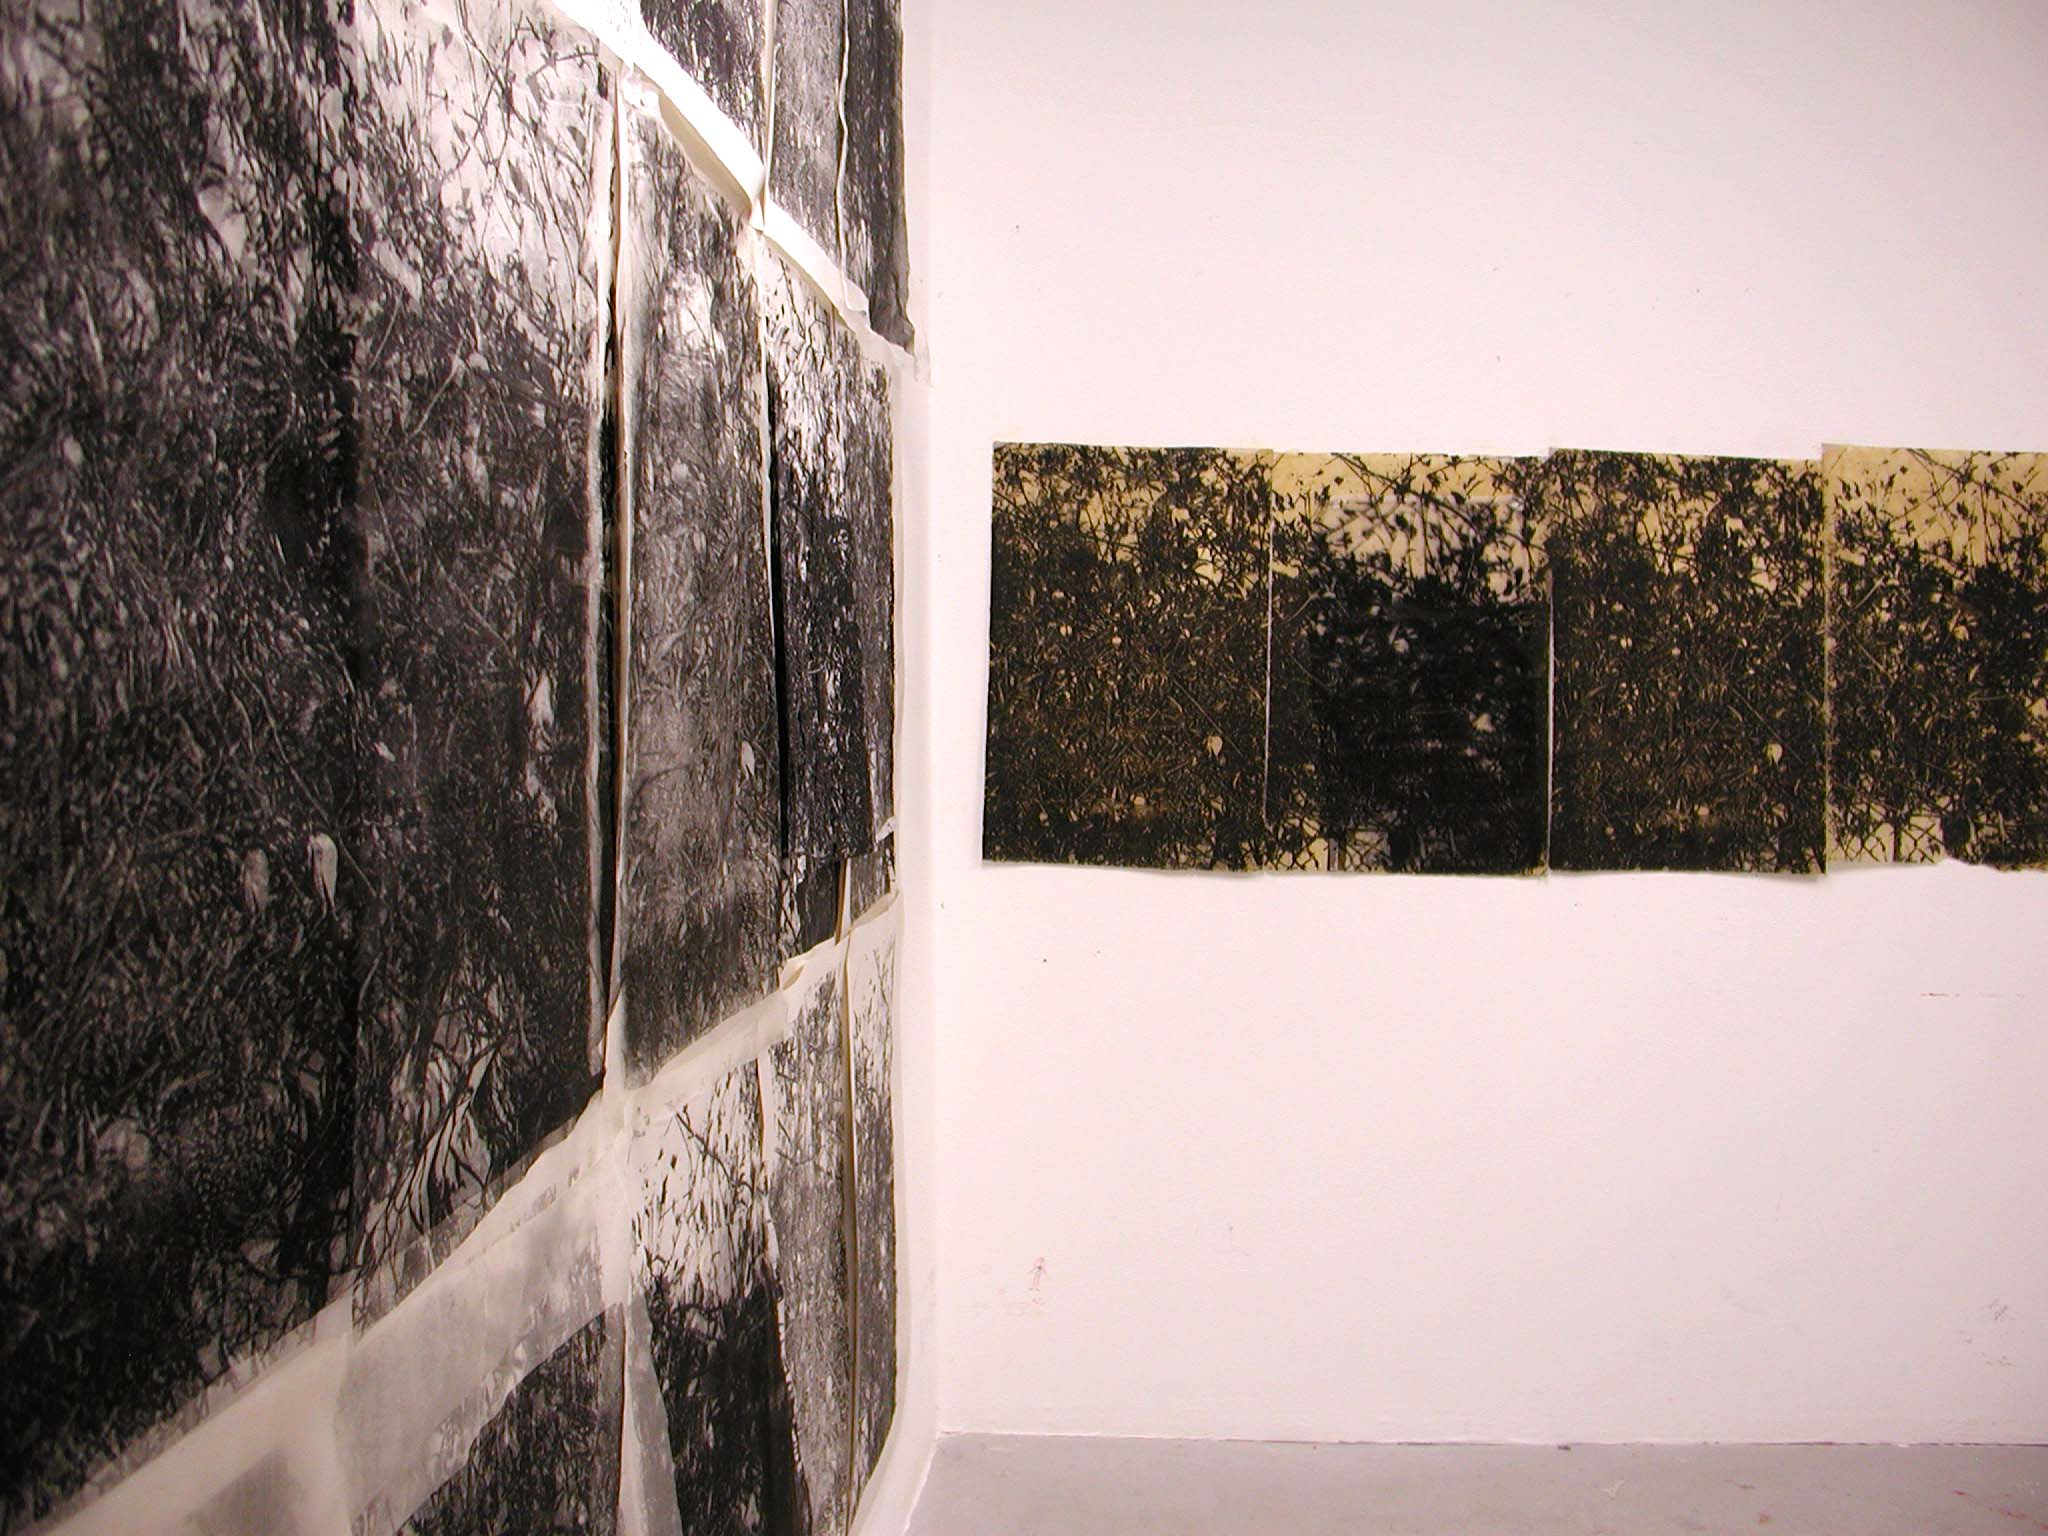 rohini-devasher-copyright-thicket-2004 (installation view)